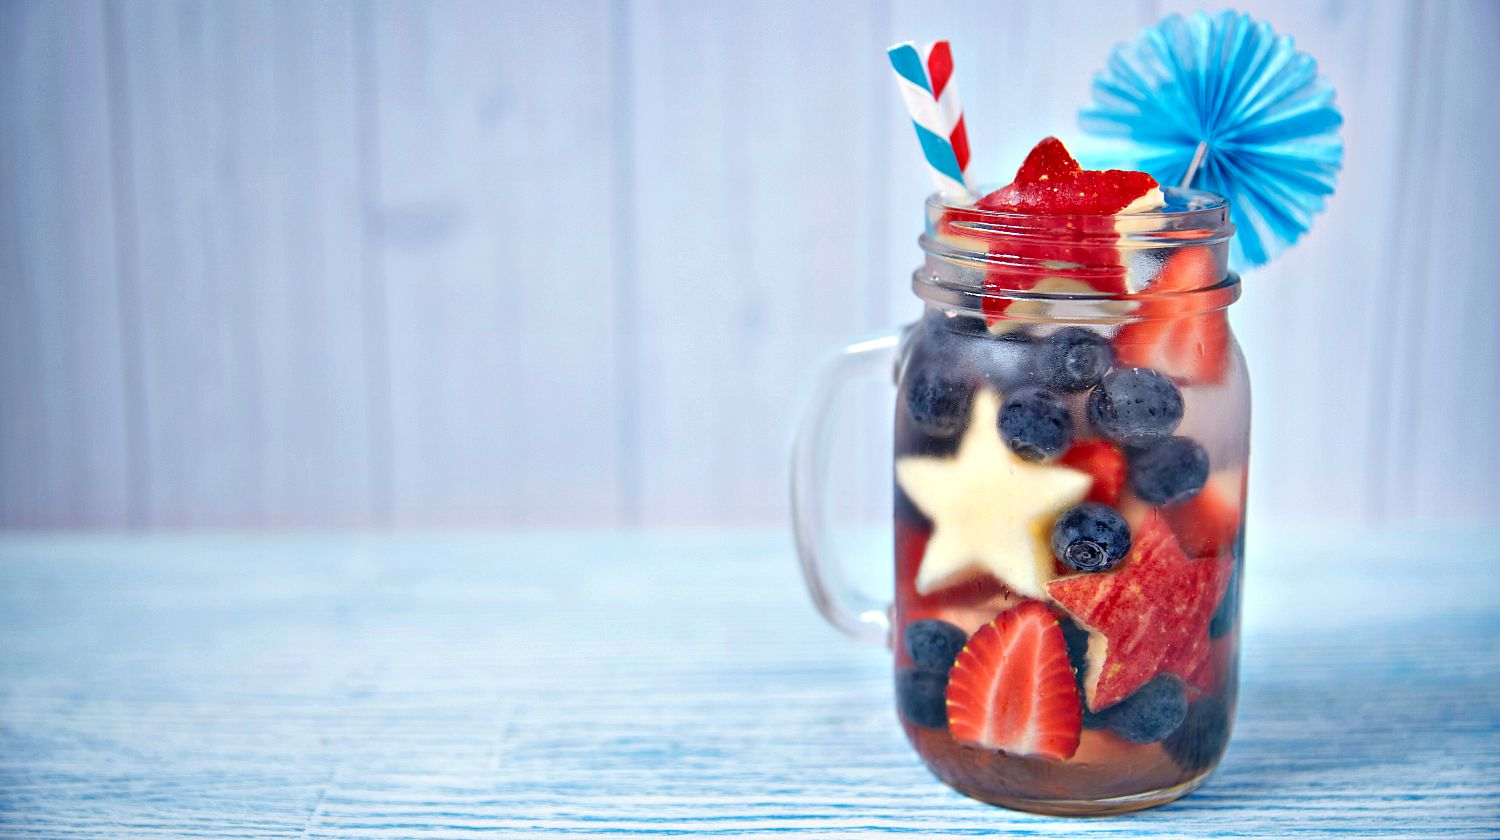 Feature | Patriotic drink cocktail with strawberry, blueberry and apple | 4th Of July Drink Recipes In Mason Jars To Mix At Home